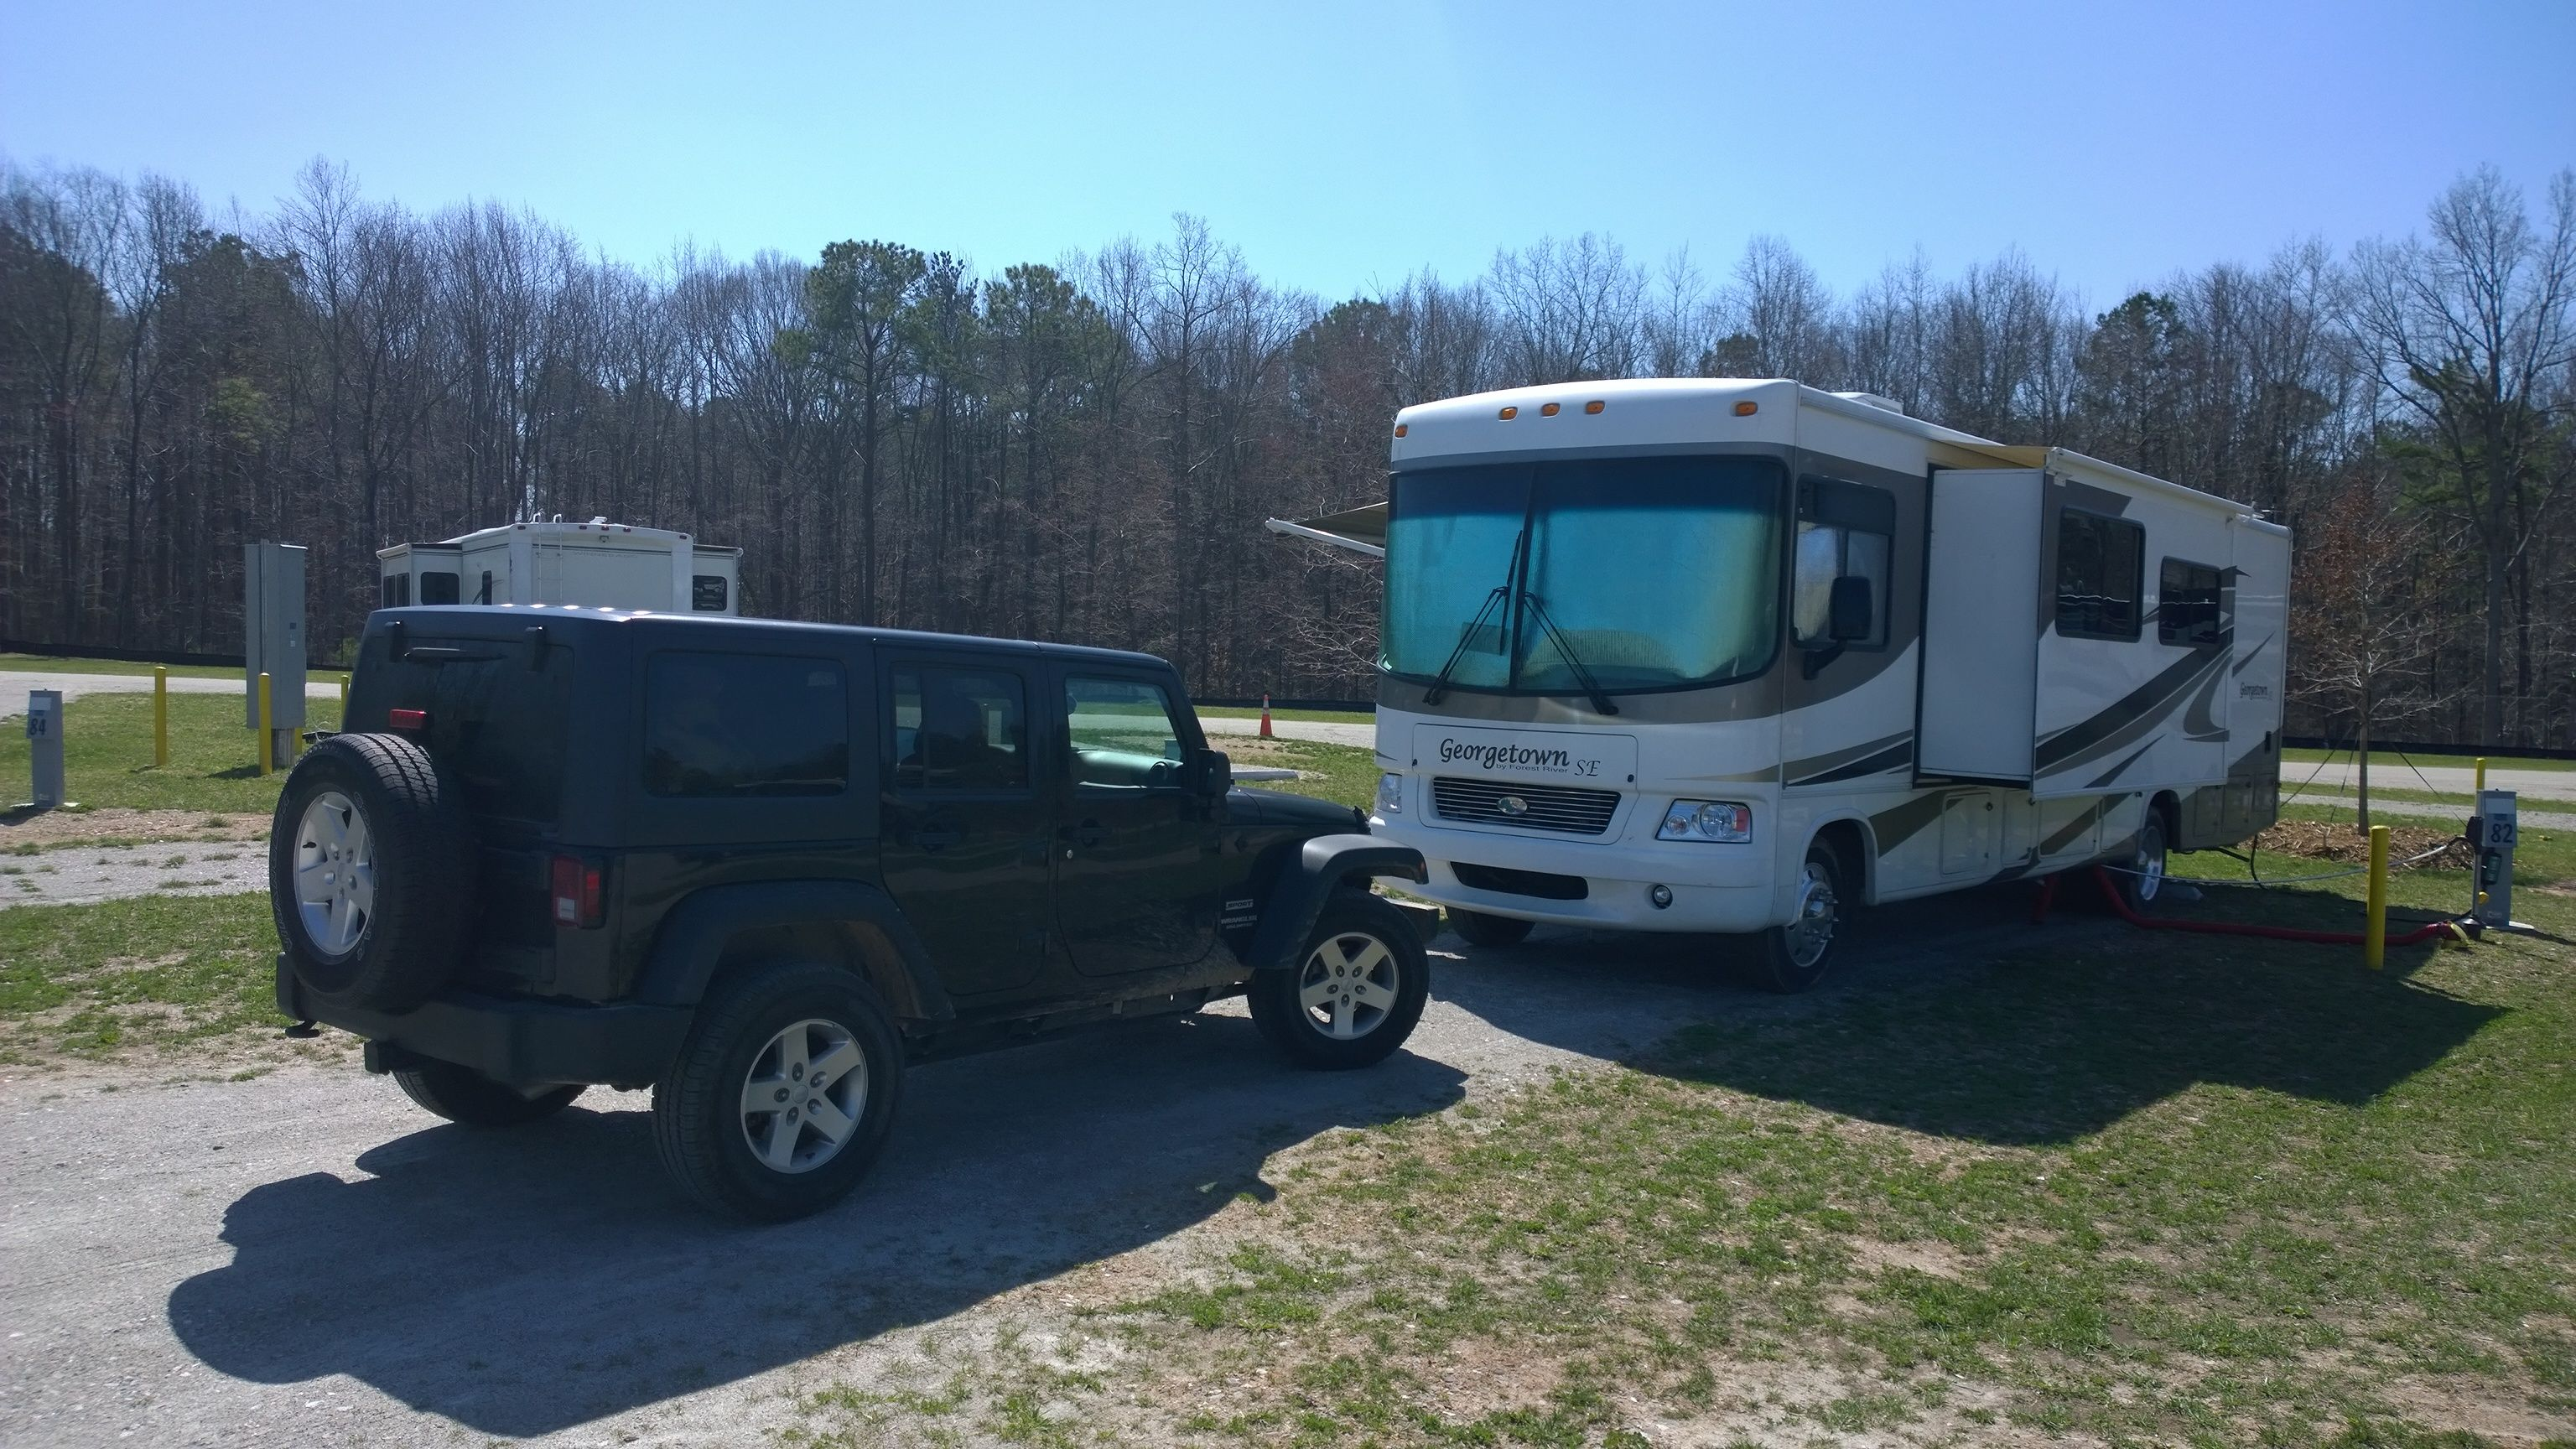 A Unique Camping Experience At The North Carolina State Fairground In Raleigh Nc As We Explore The Us In Our Rv Raleigh Camping Experience North Carolina